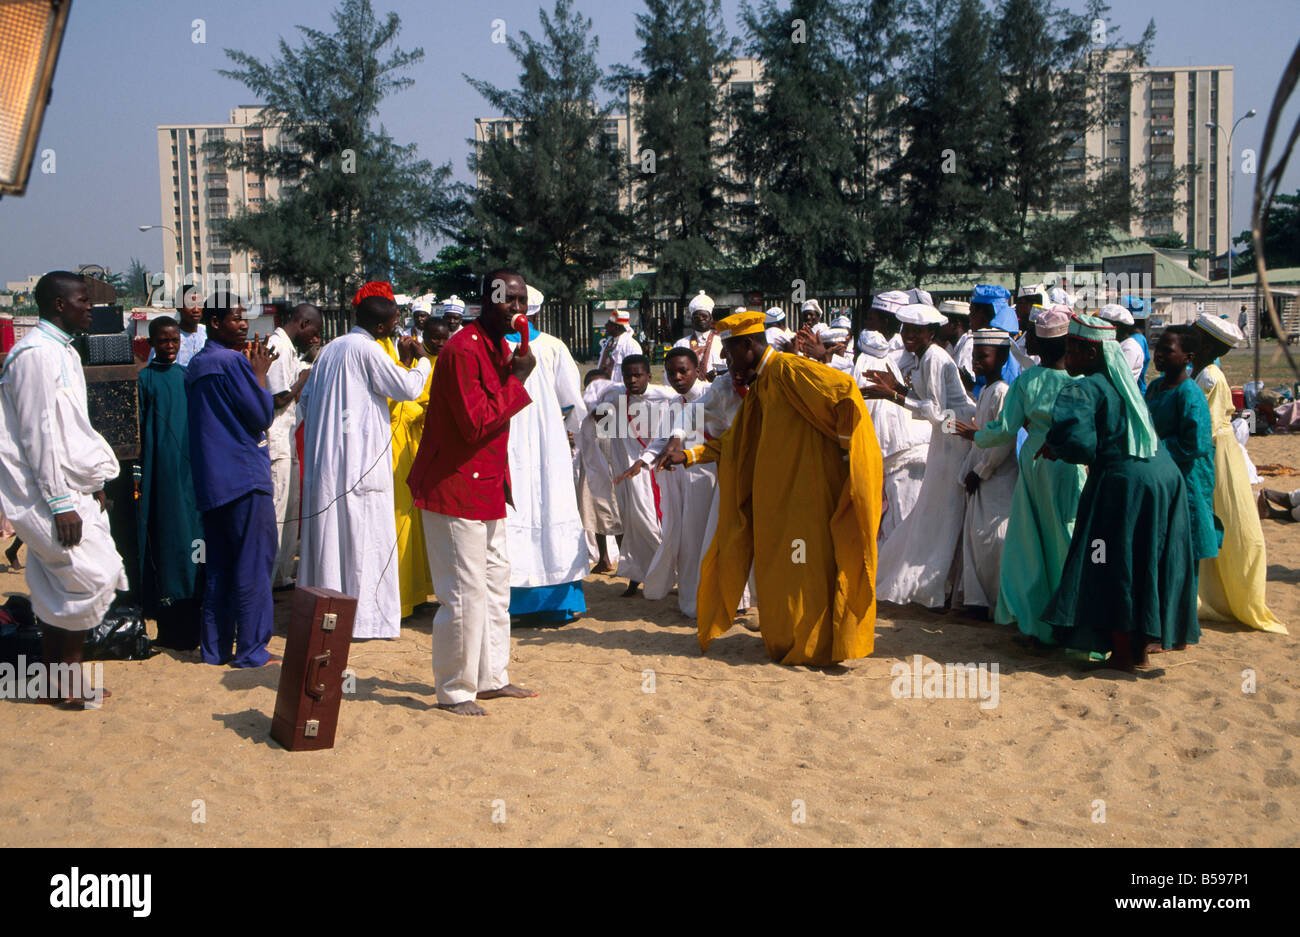 Christians worshipping on the sand at the beach in Lagos Nigeria Africa - Stock Image